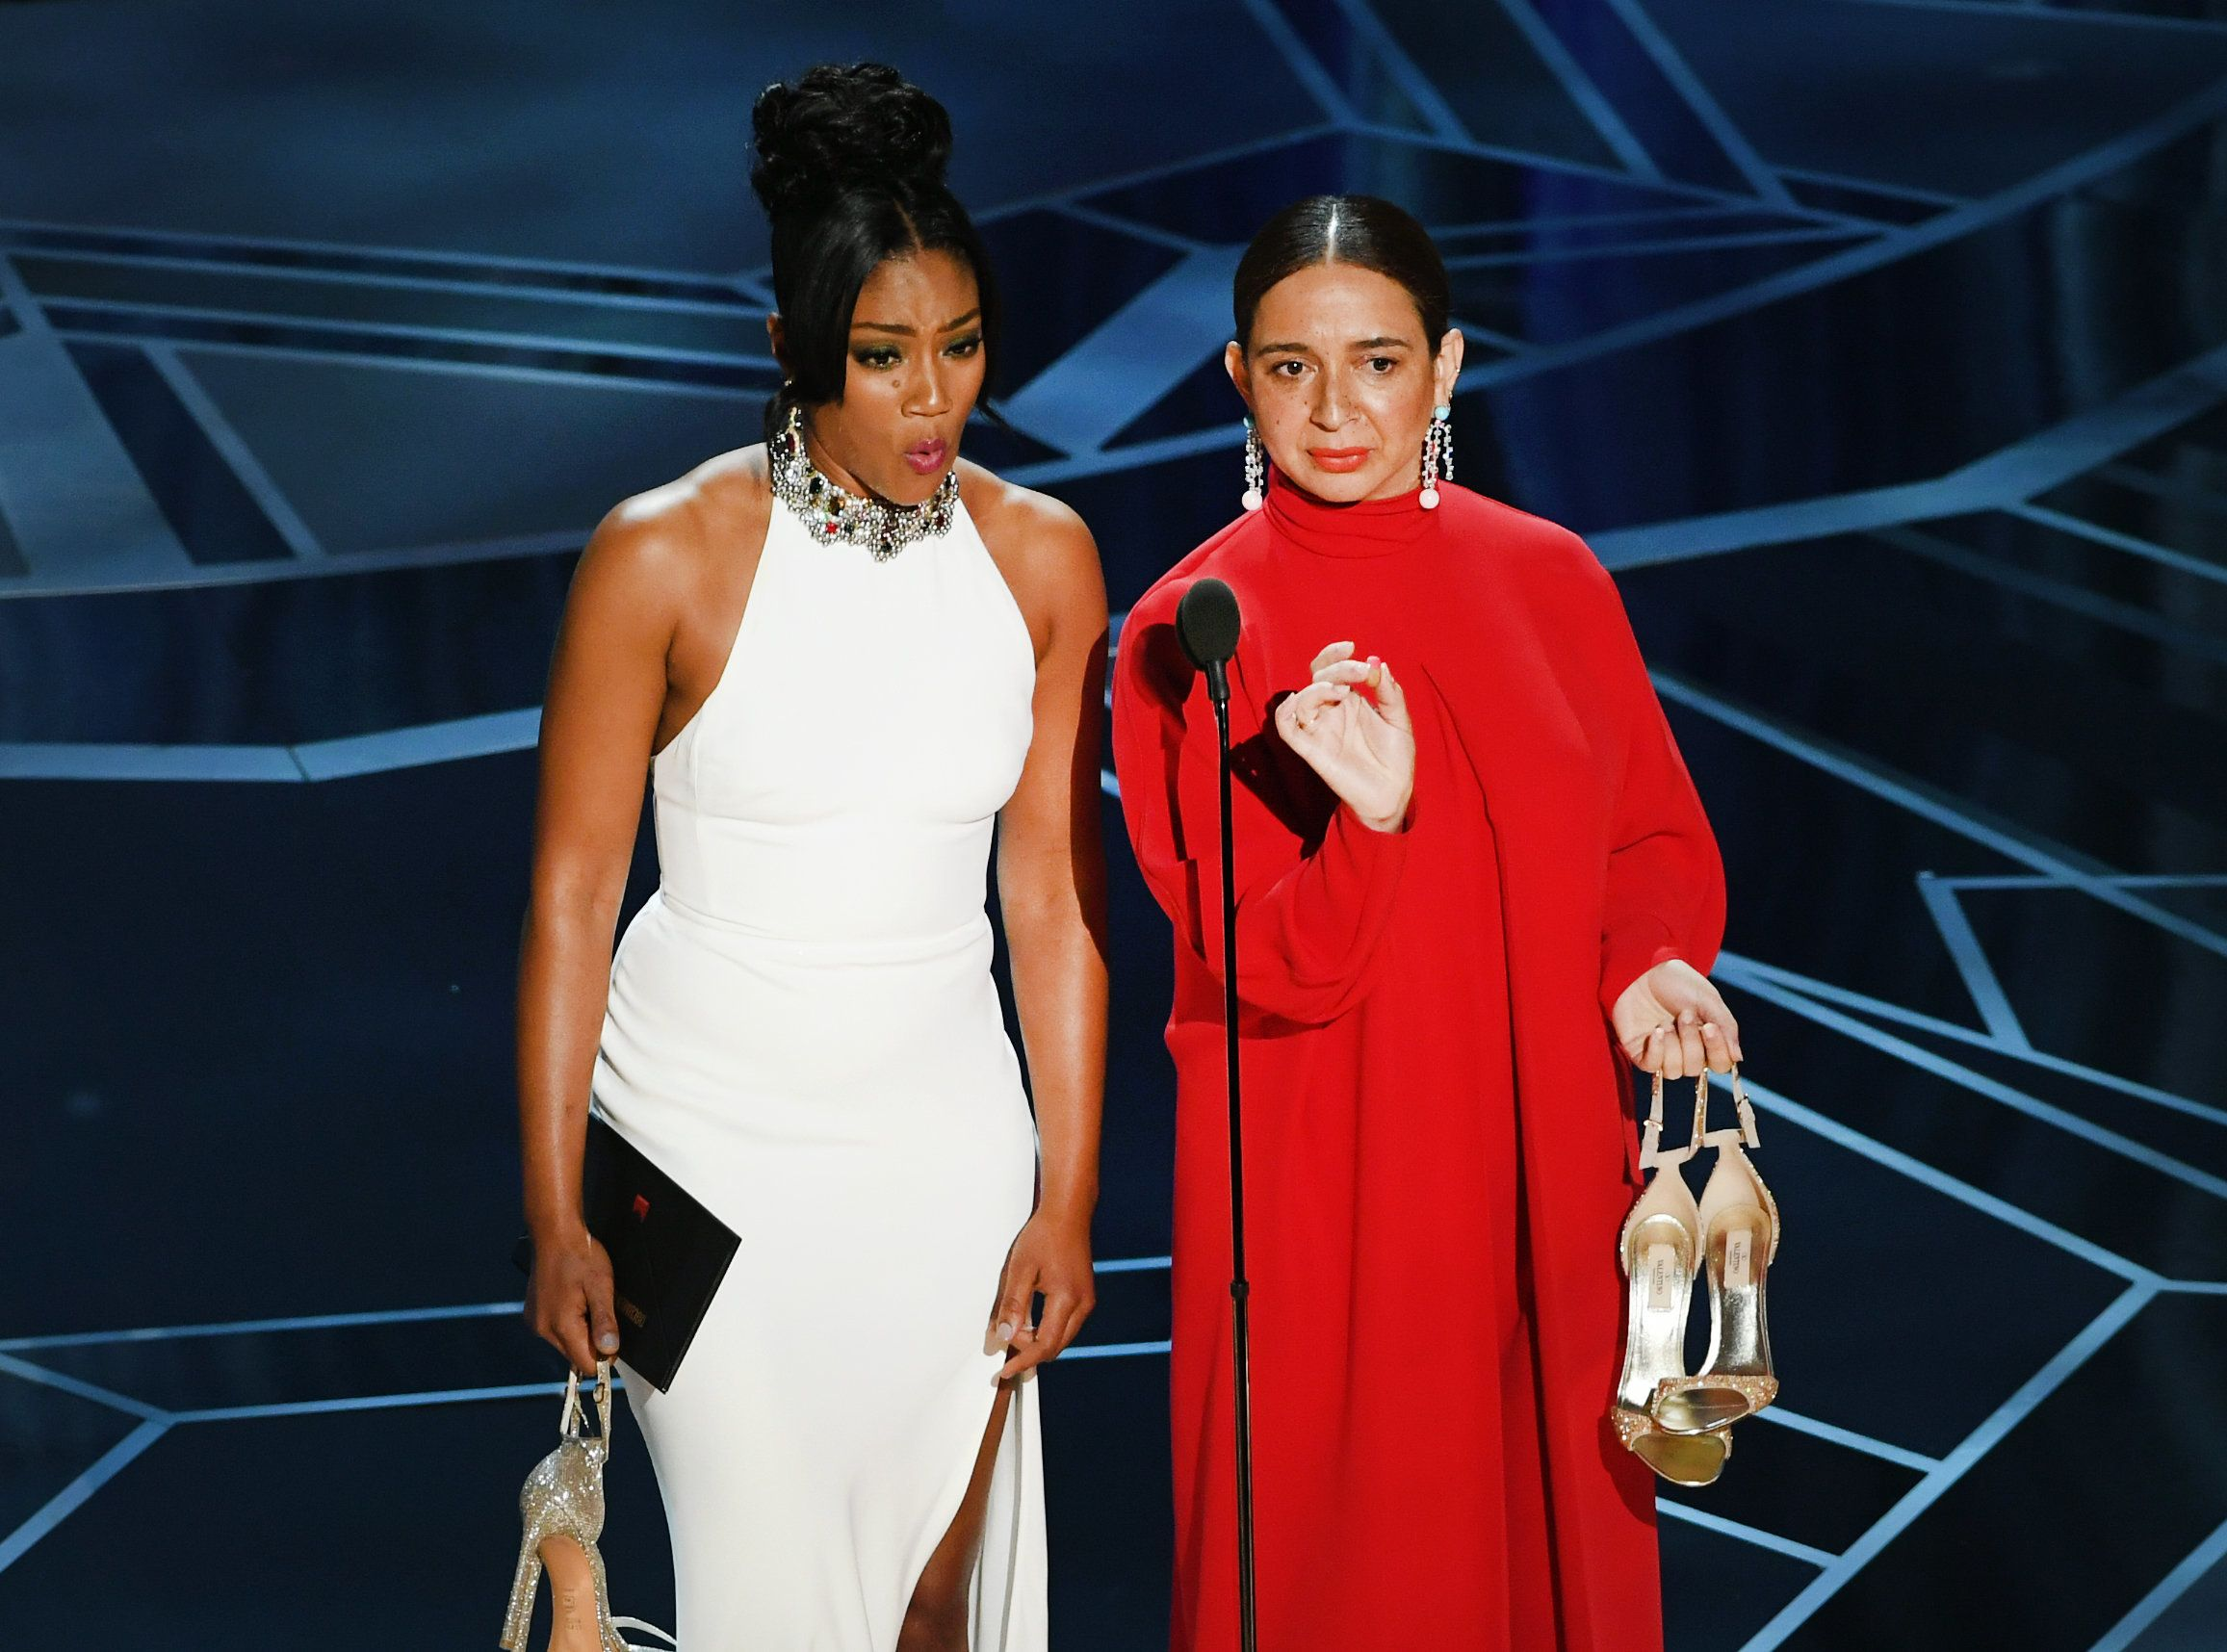 Oscars Viewers Call For Tiffany Haddish And Maya Rudolph To Host Next